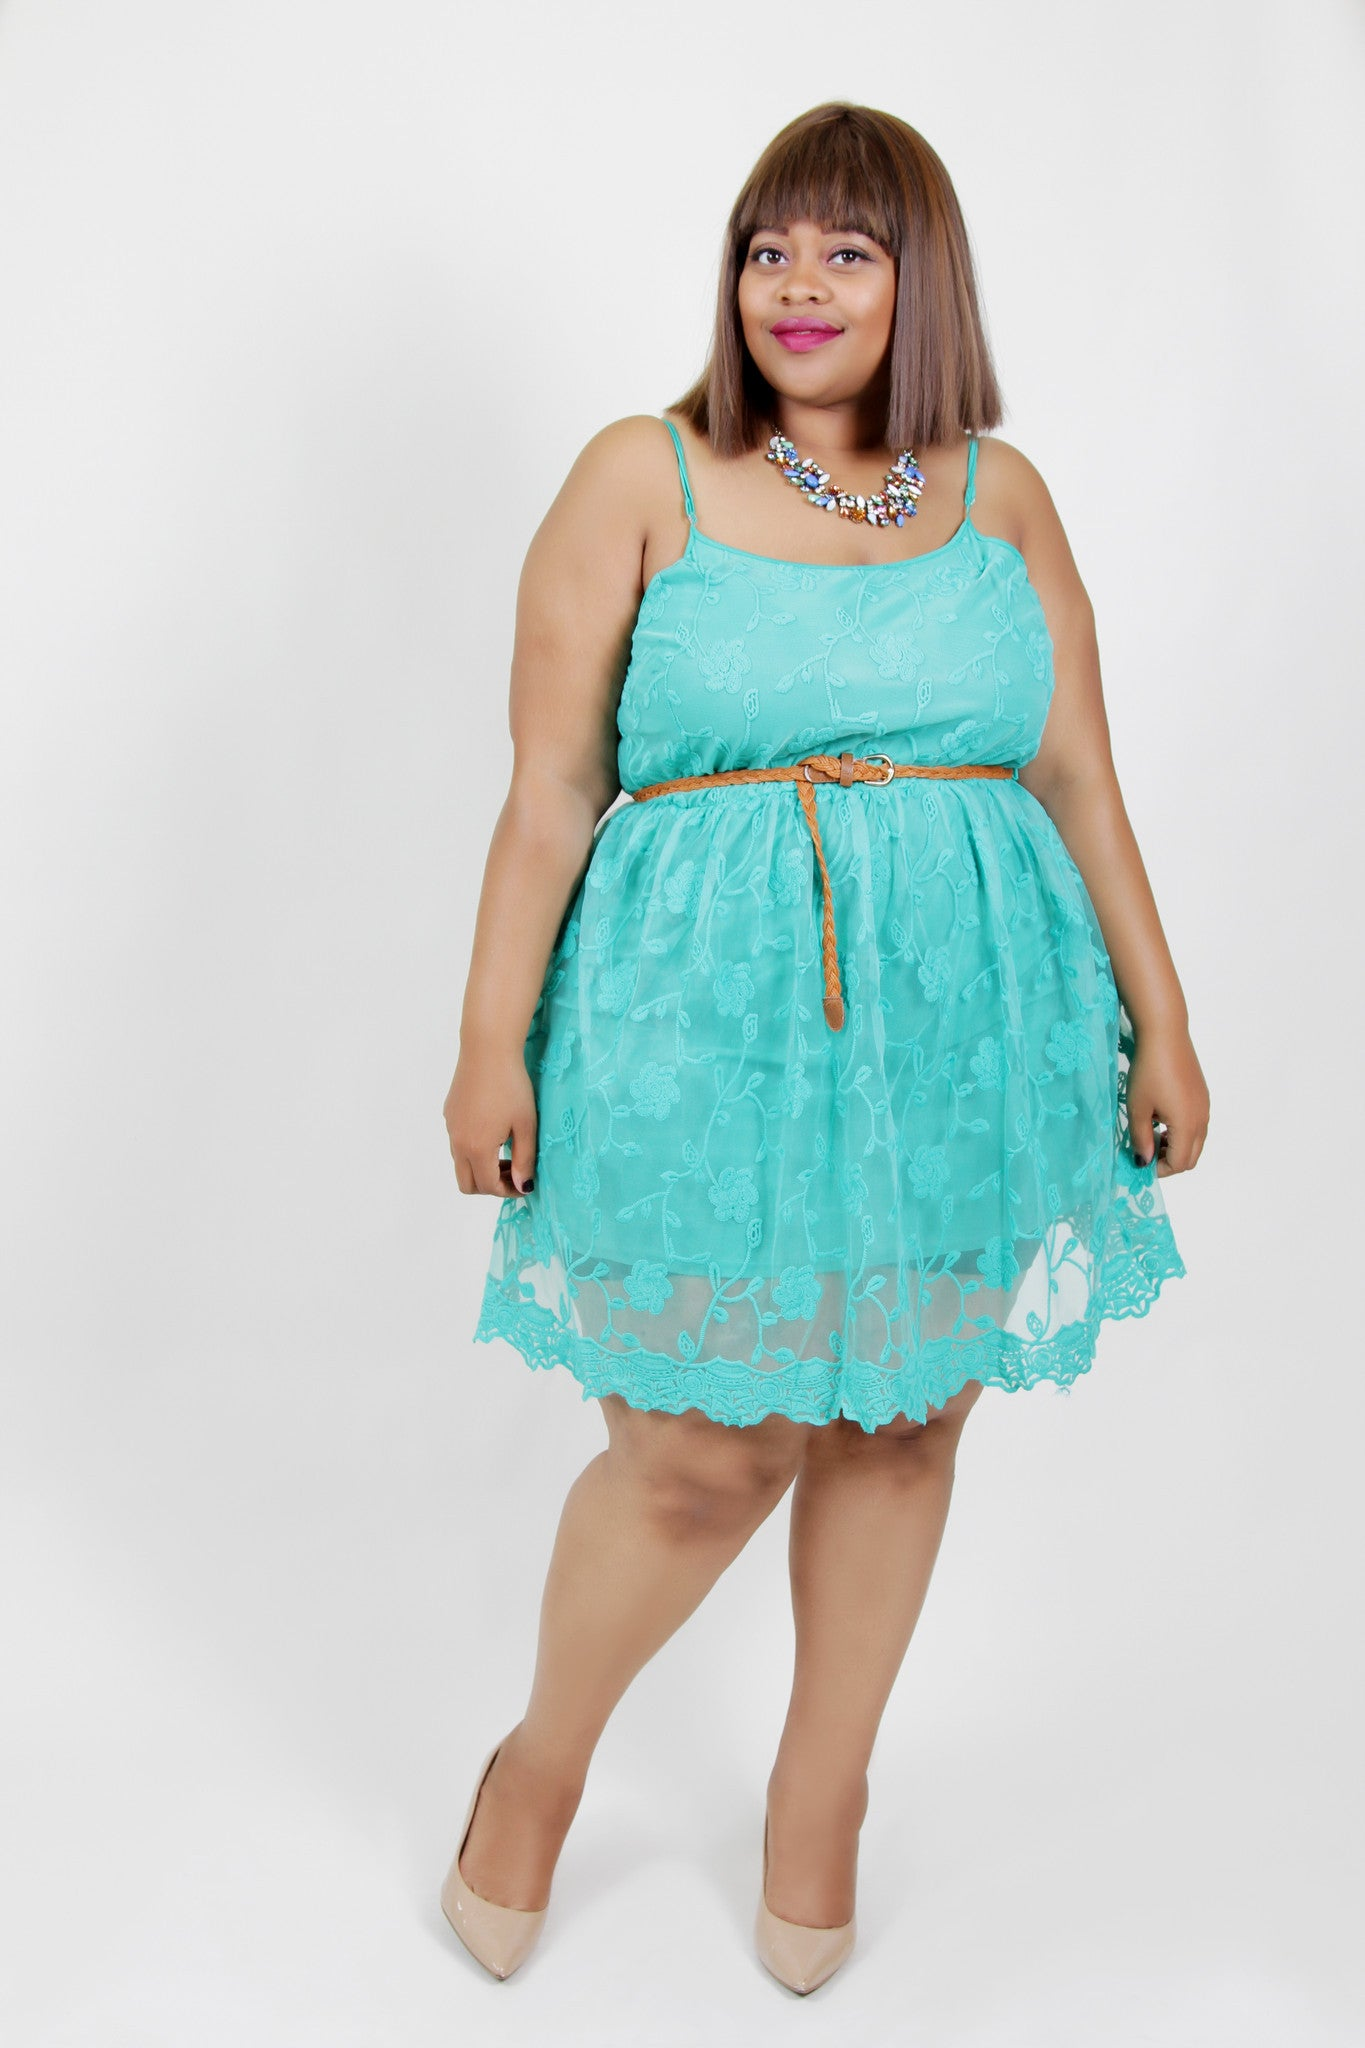 This lace flower dress with adjustable straps is sweet and feminine but dont let her fool you! She's powerful and strong too! Fully lined for coverage and cute leather b elt included. 100% Polyester Hand wash cold Hang to dry Imported Length Arm hole (adjustable straps) Size: 16/18 32.5